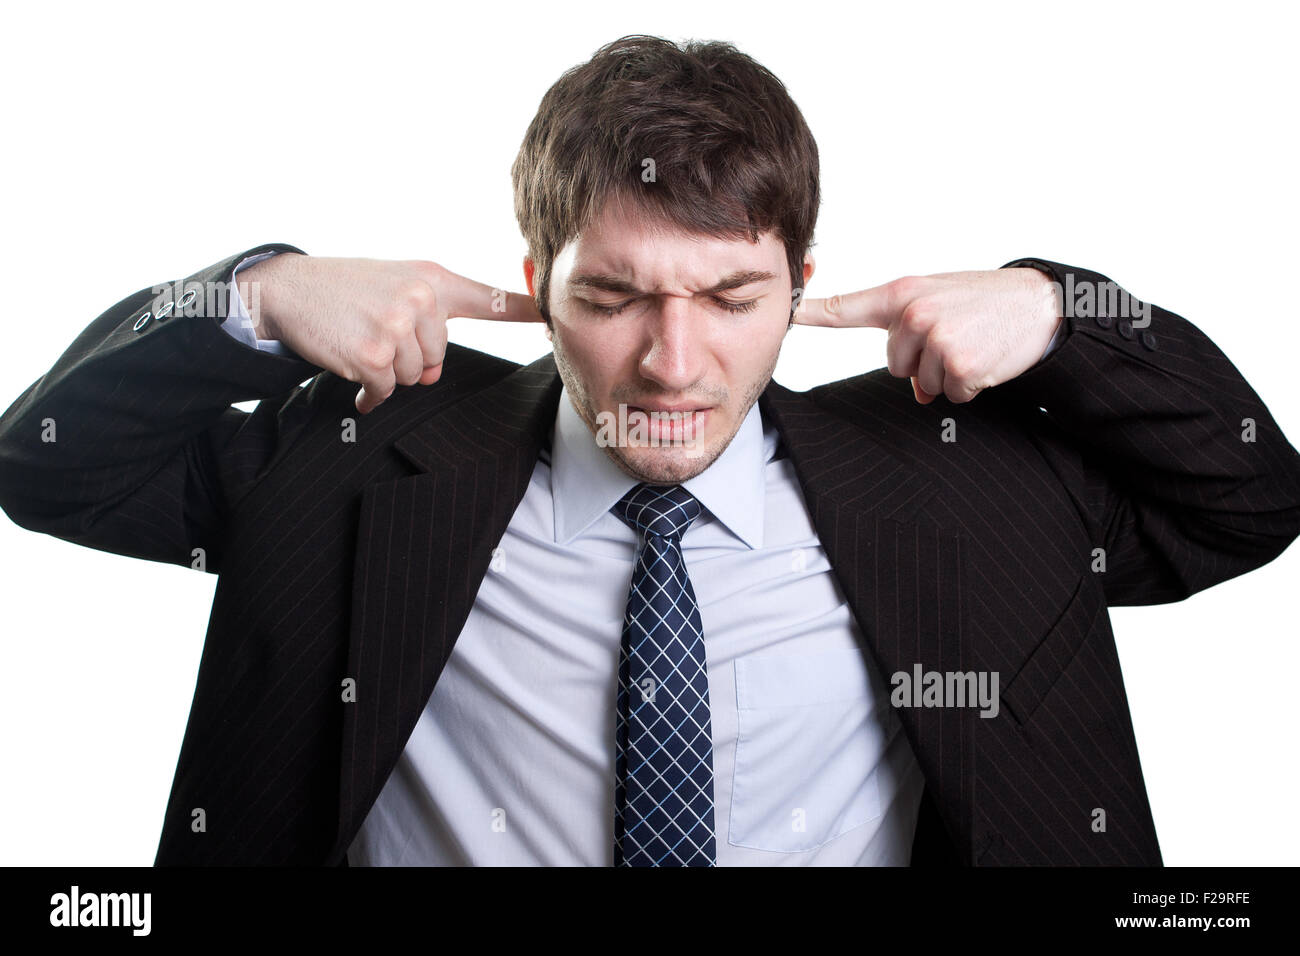 Isolated businessman expressing stress and noise concept - Stock Image